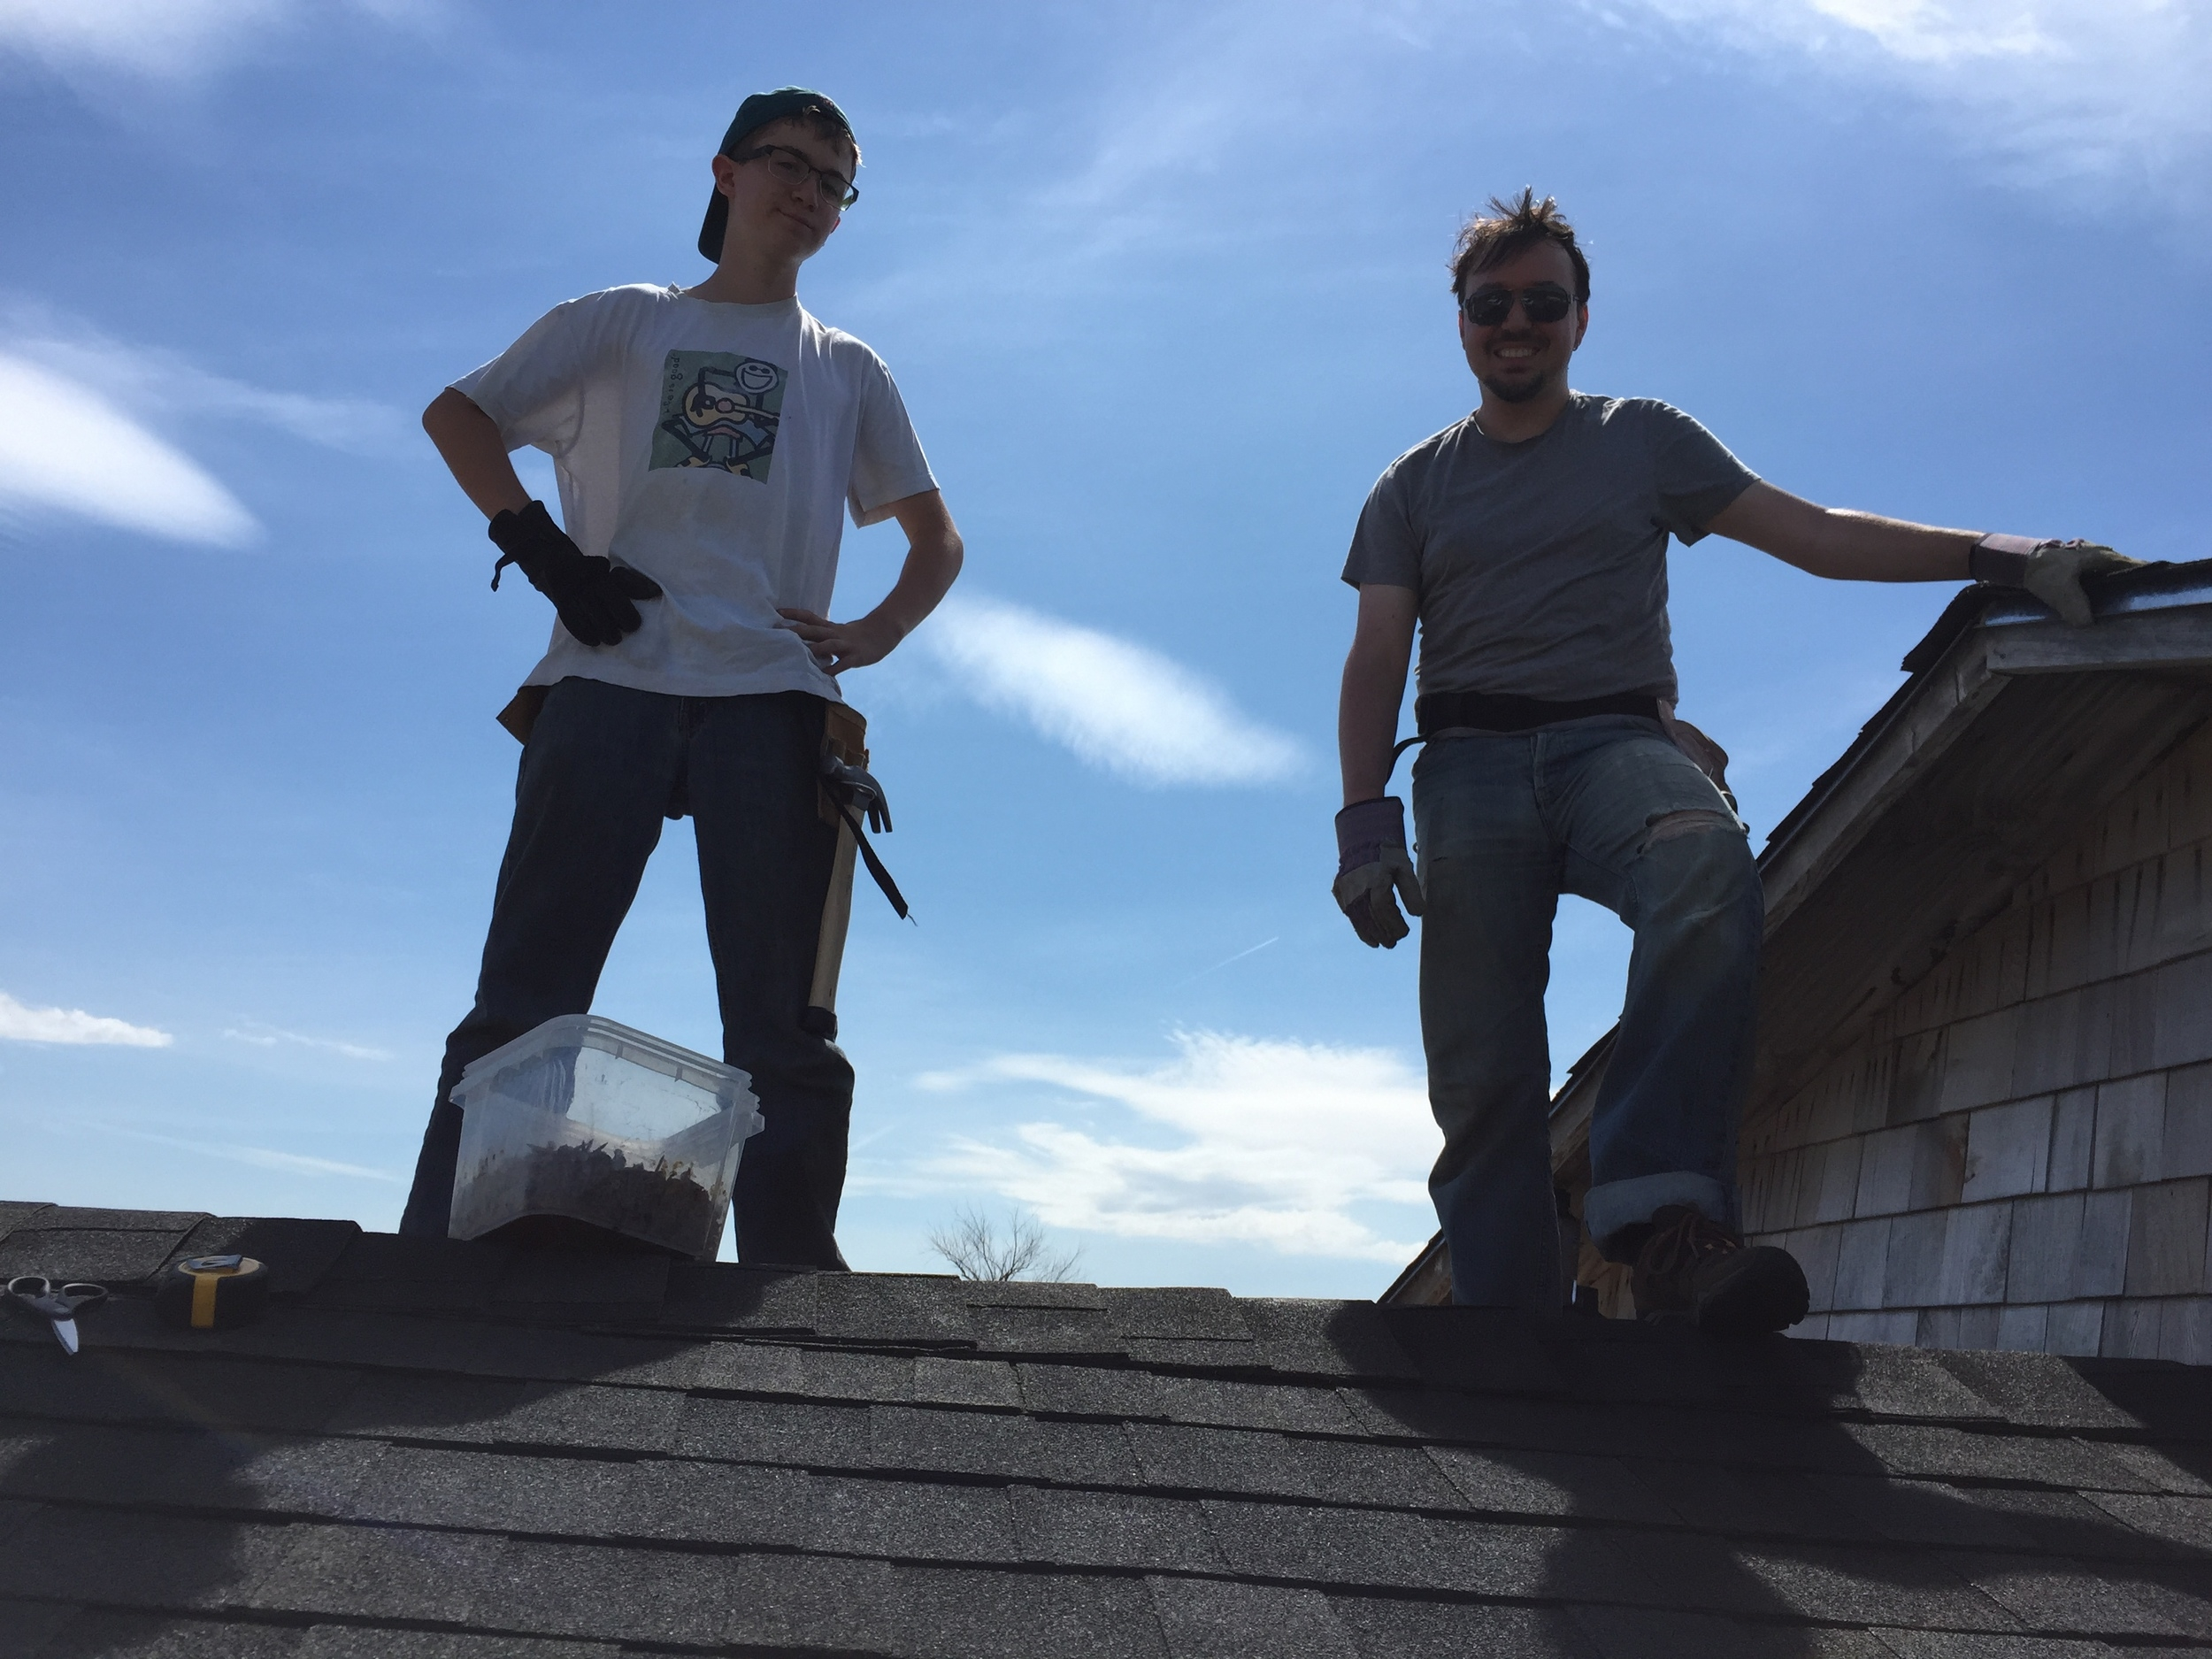 Calvin and Stefan became expert roofers as they shingled a part of the community center roof that was damaged by high winds. (Z. Gross, June 2015)